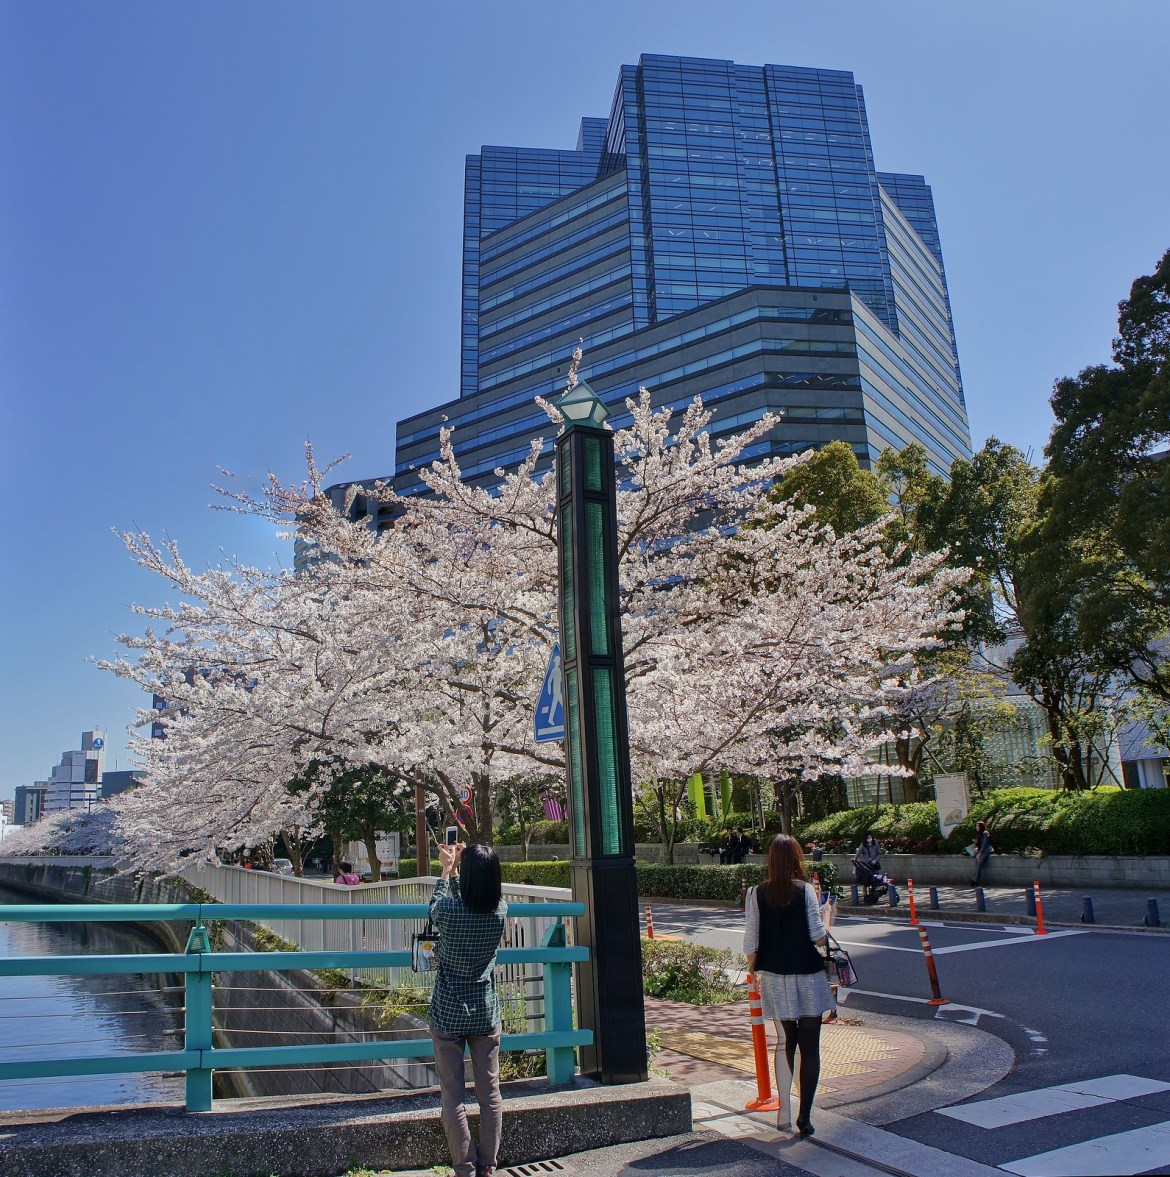 Osaki Gate City Sakura 2014 (Cherry Blossoms)